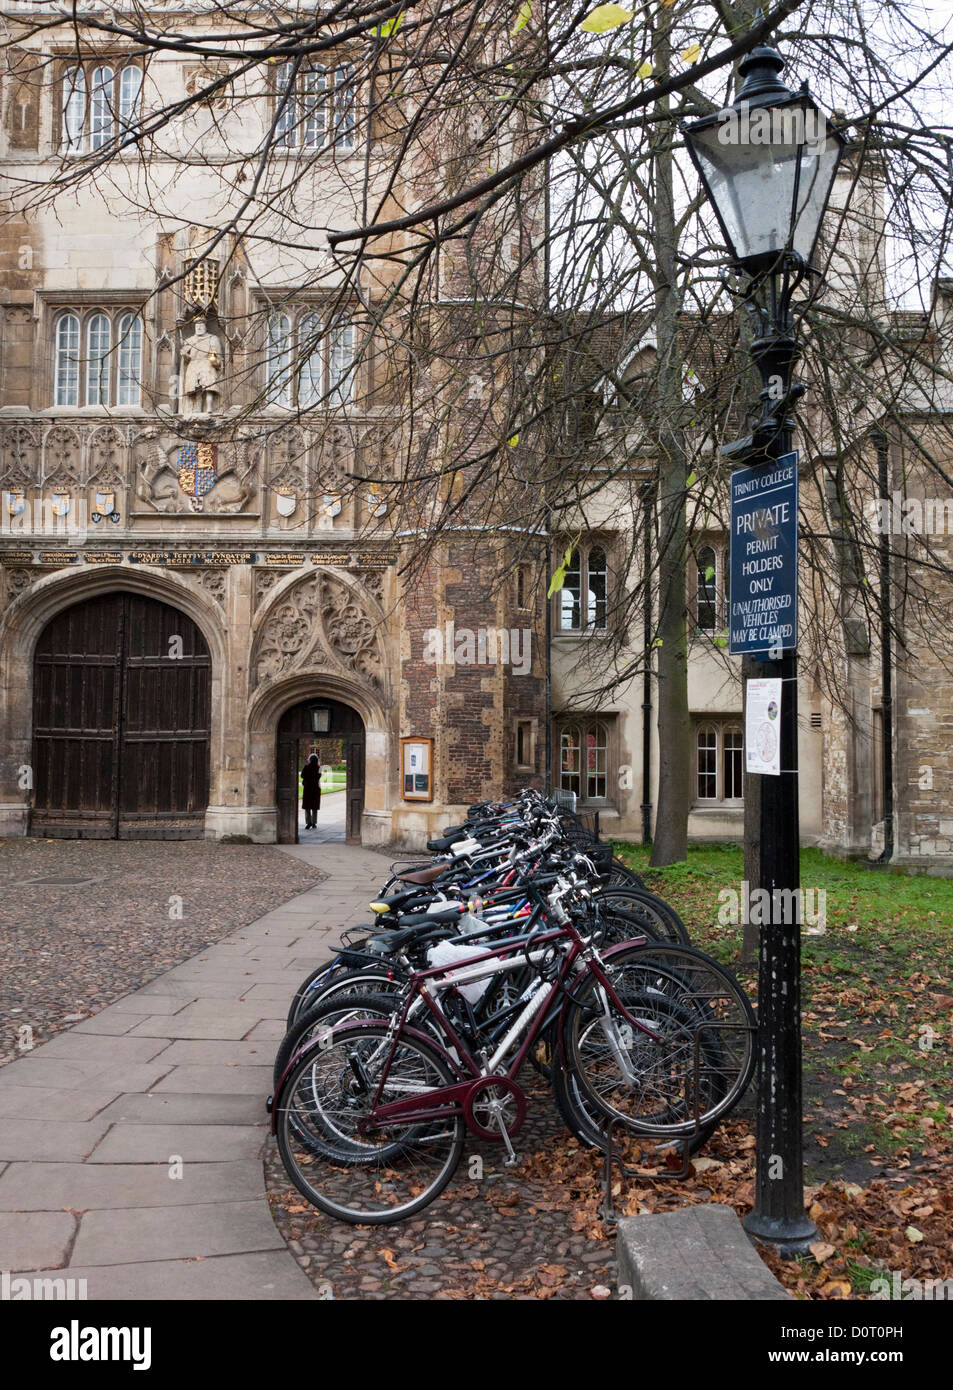 An entrance to Trinity College, Cambridge with bicycles parked in the foreground. - Stock Image